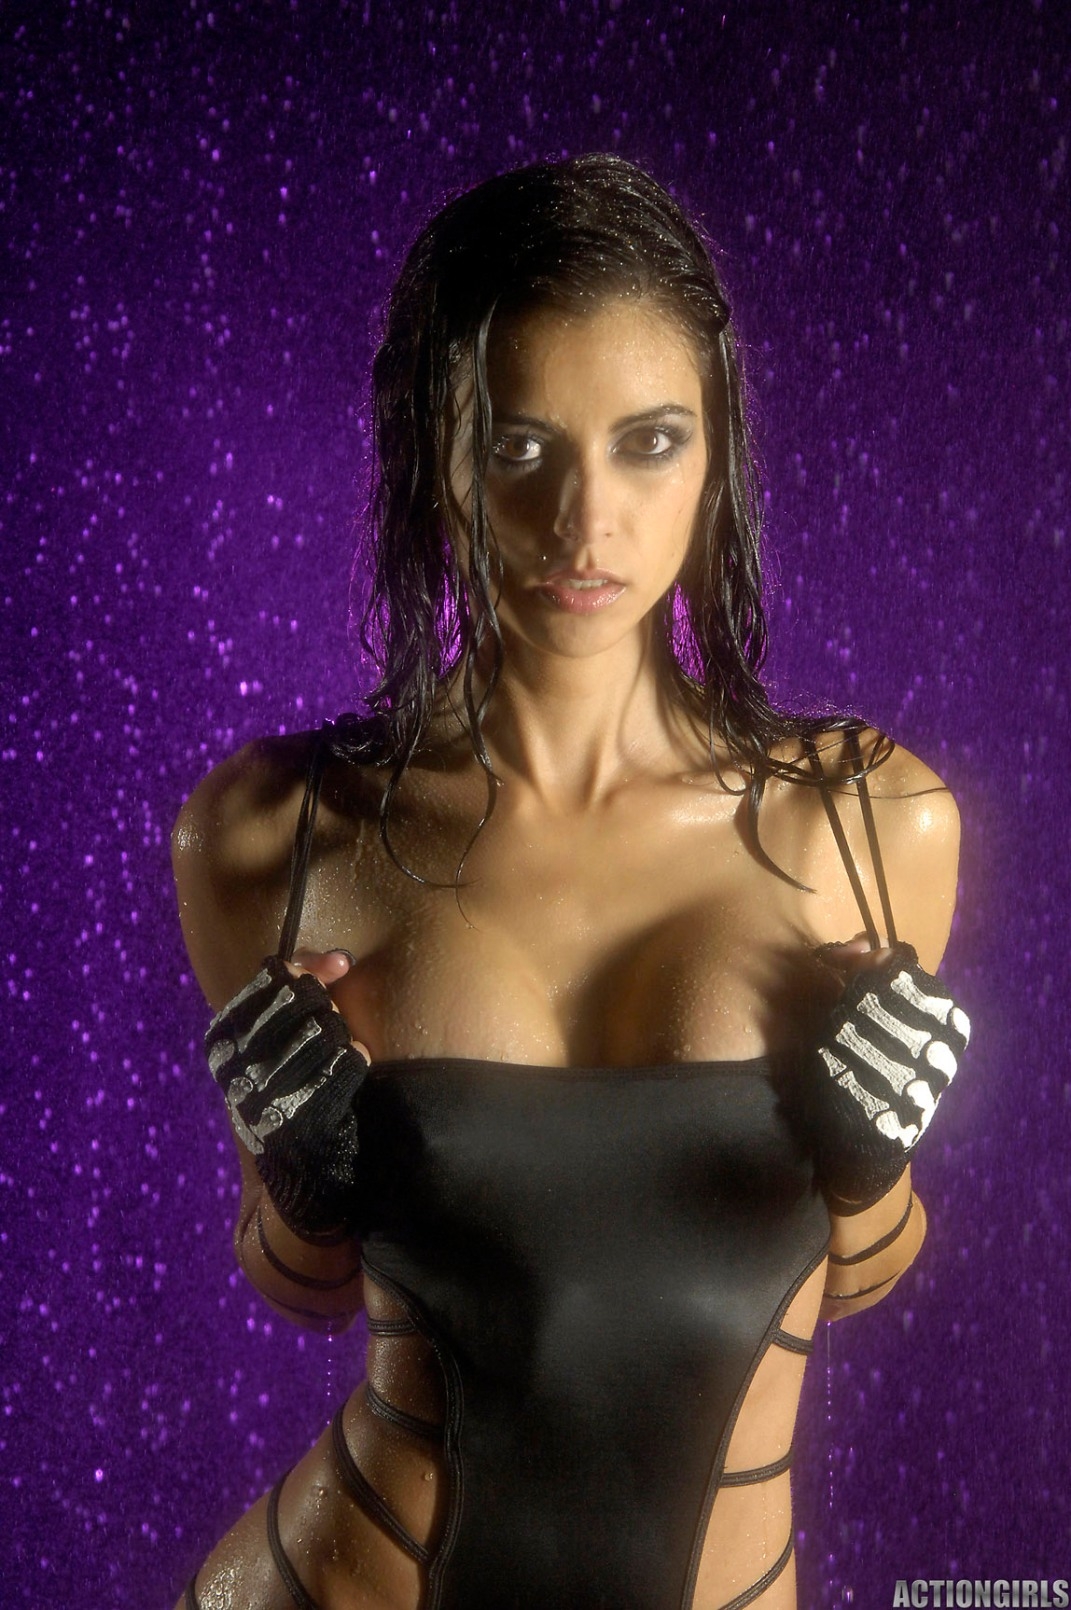 leanna vamp wet strip